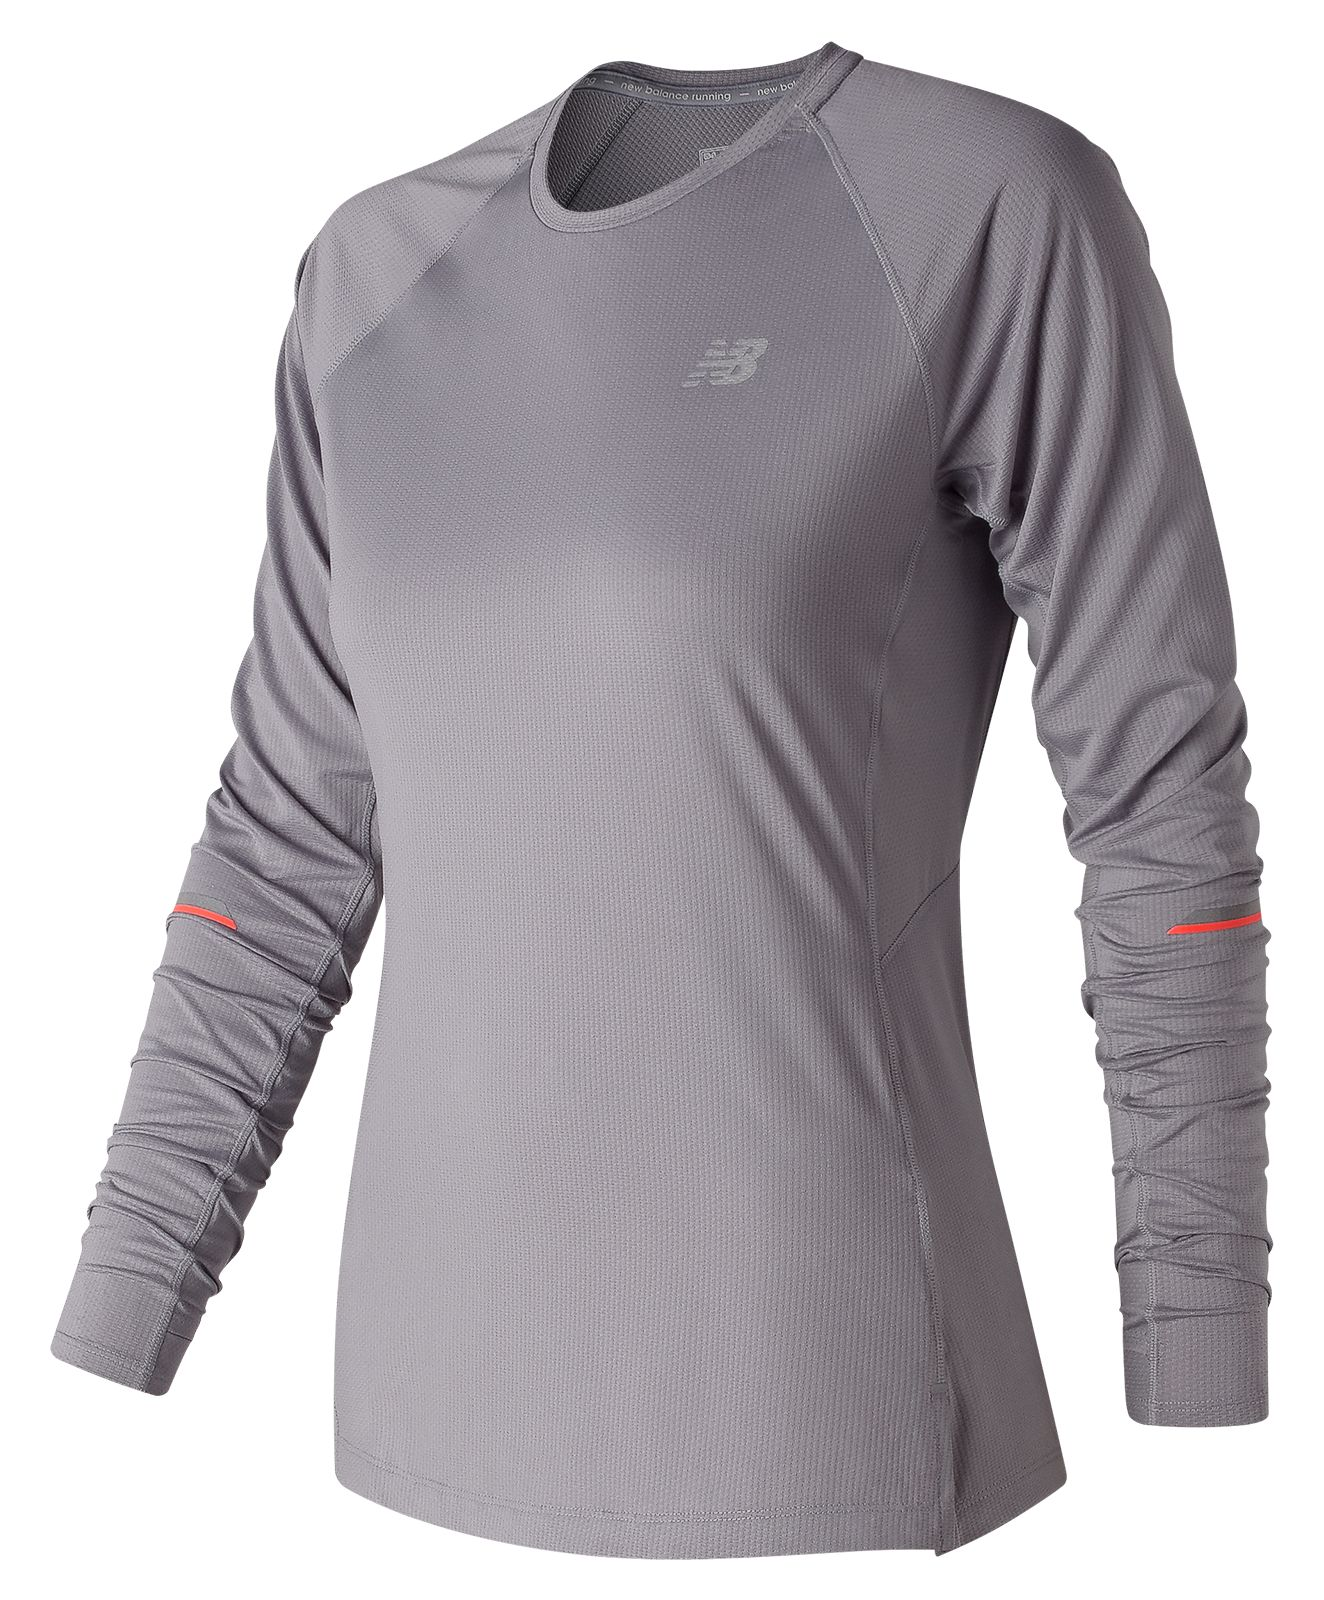 Women's NB Ice 2.0 Long Sleeve